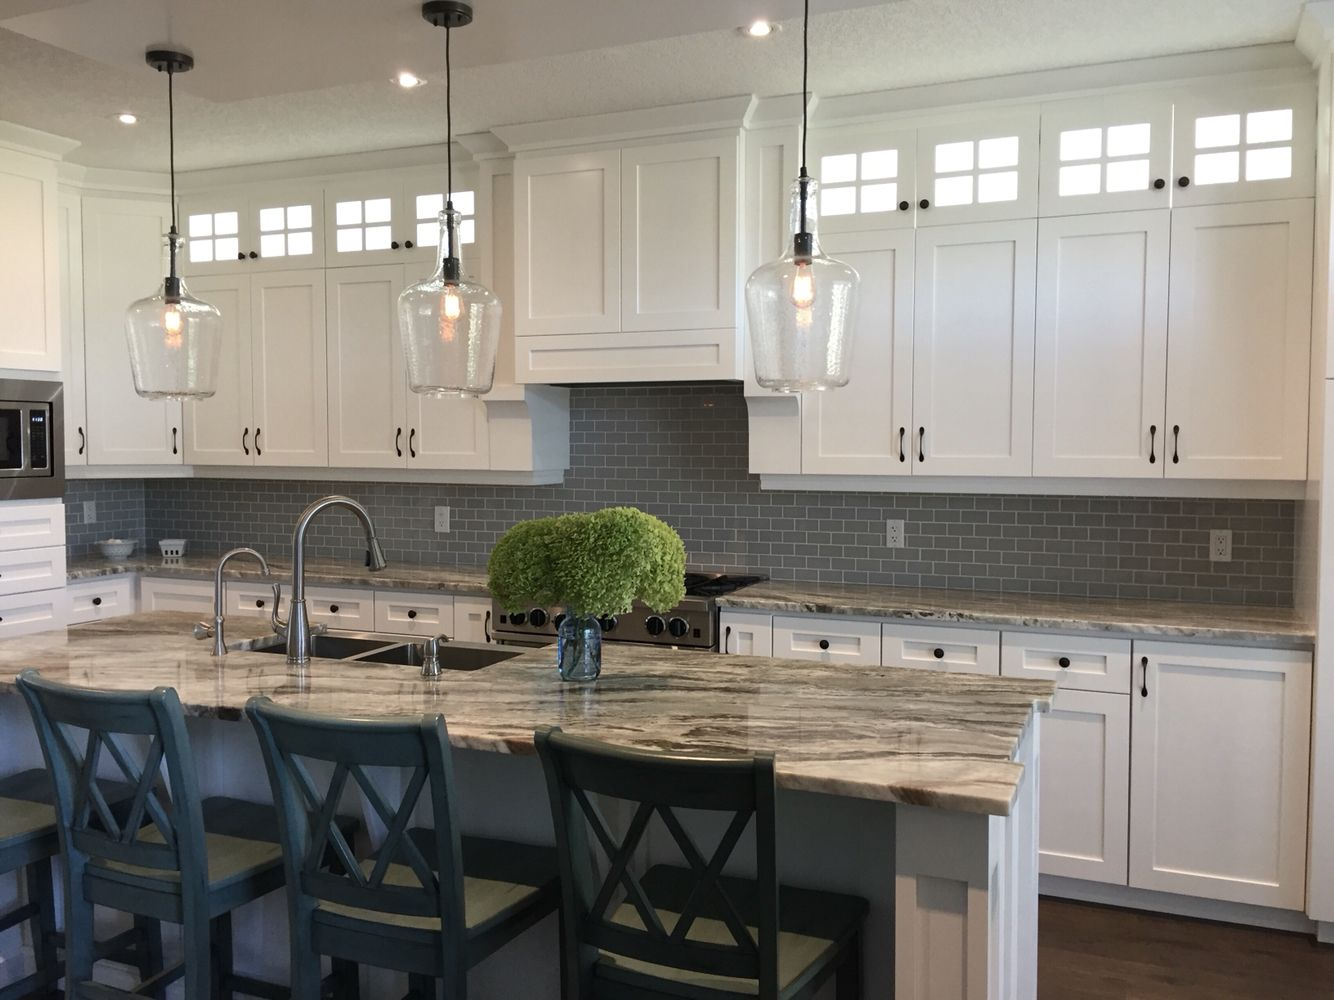 Gorgeous White Shaker Kitchen With Fantasy Brown Granite Farmhouse Sink And Grey Subway Tile Backsplash